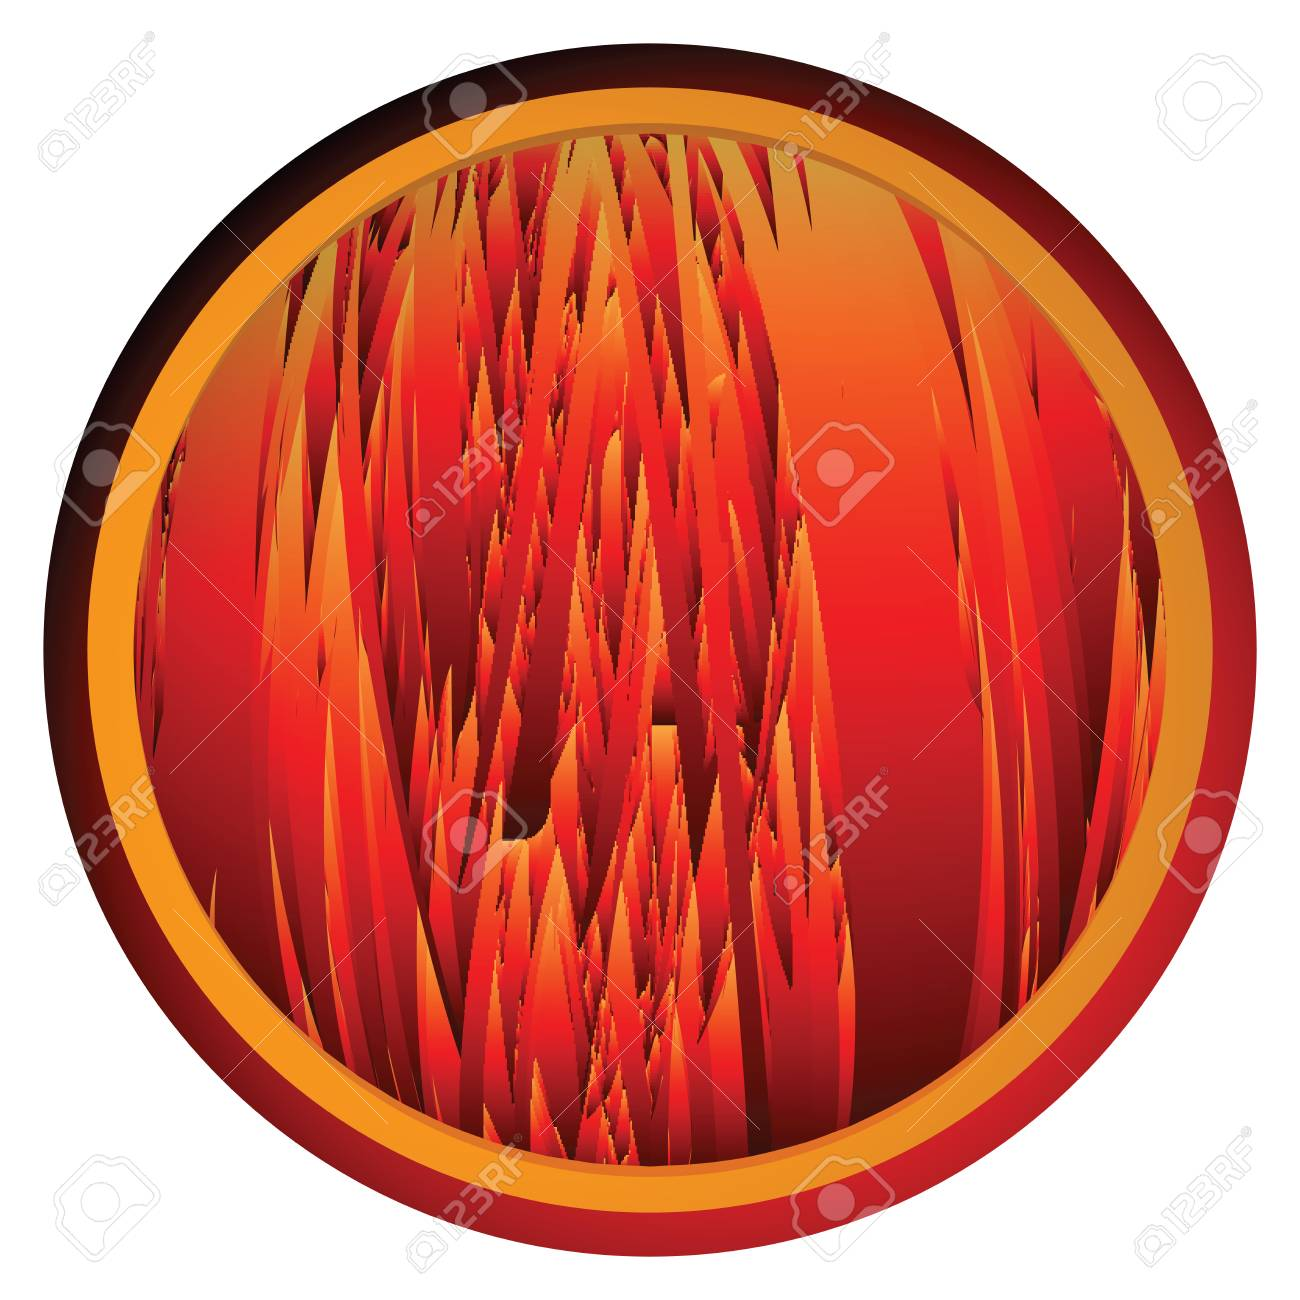 Conceptual web button with flames background Stock Vector - 6135061